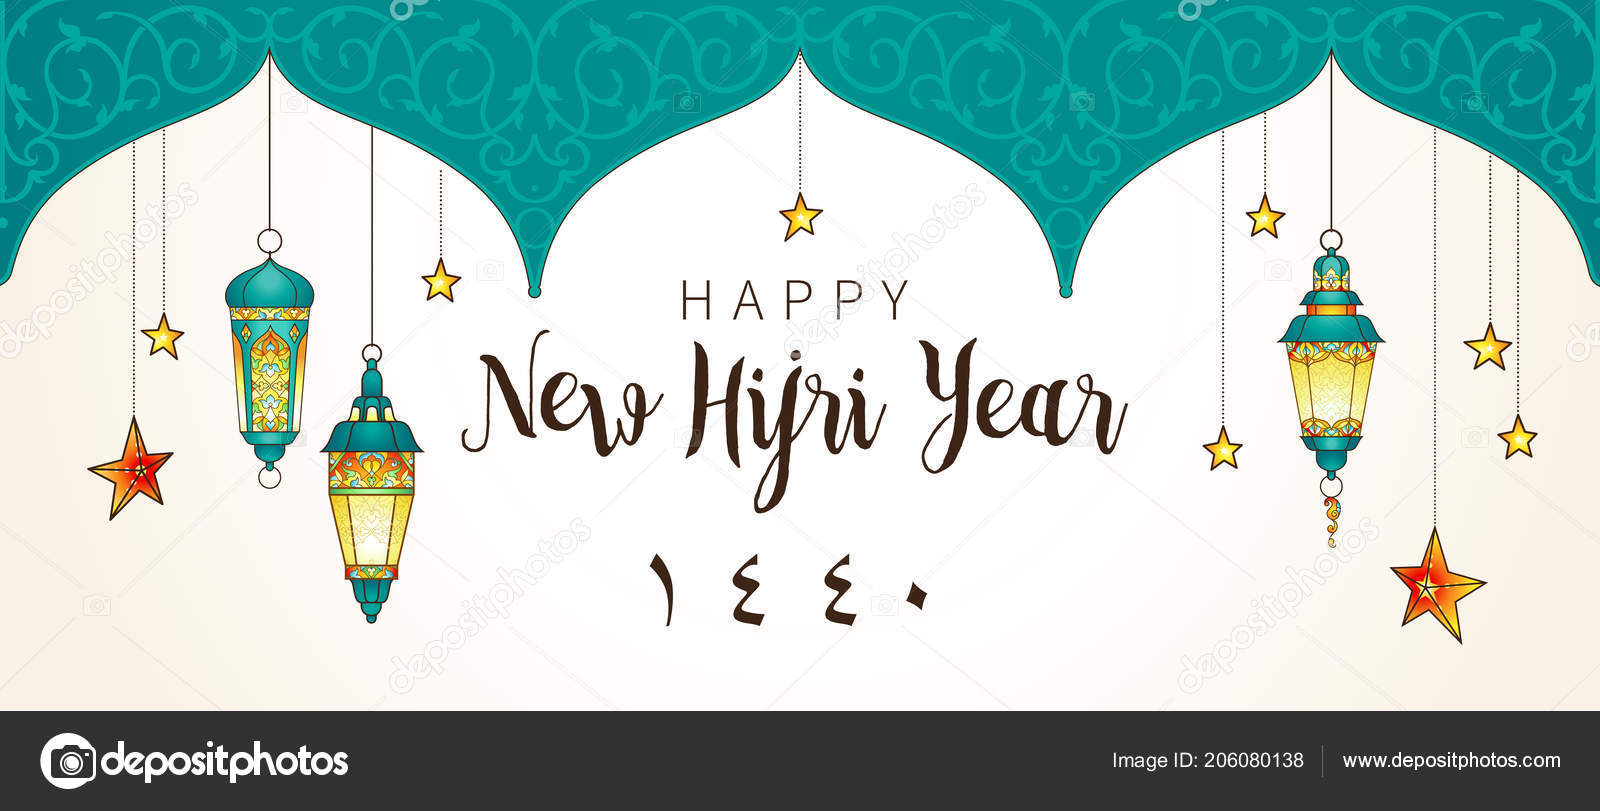 happy new hijri year 1440 vector holiday card calligraphy arabic stock vector